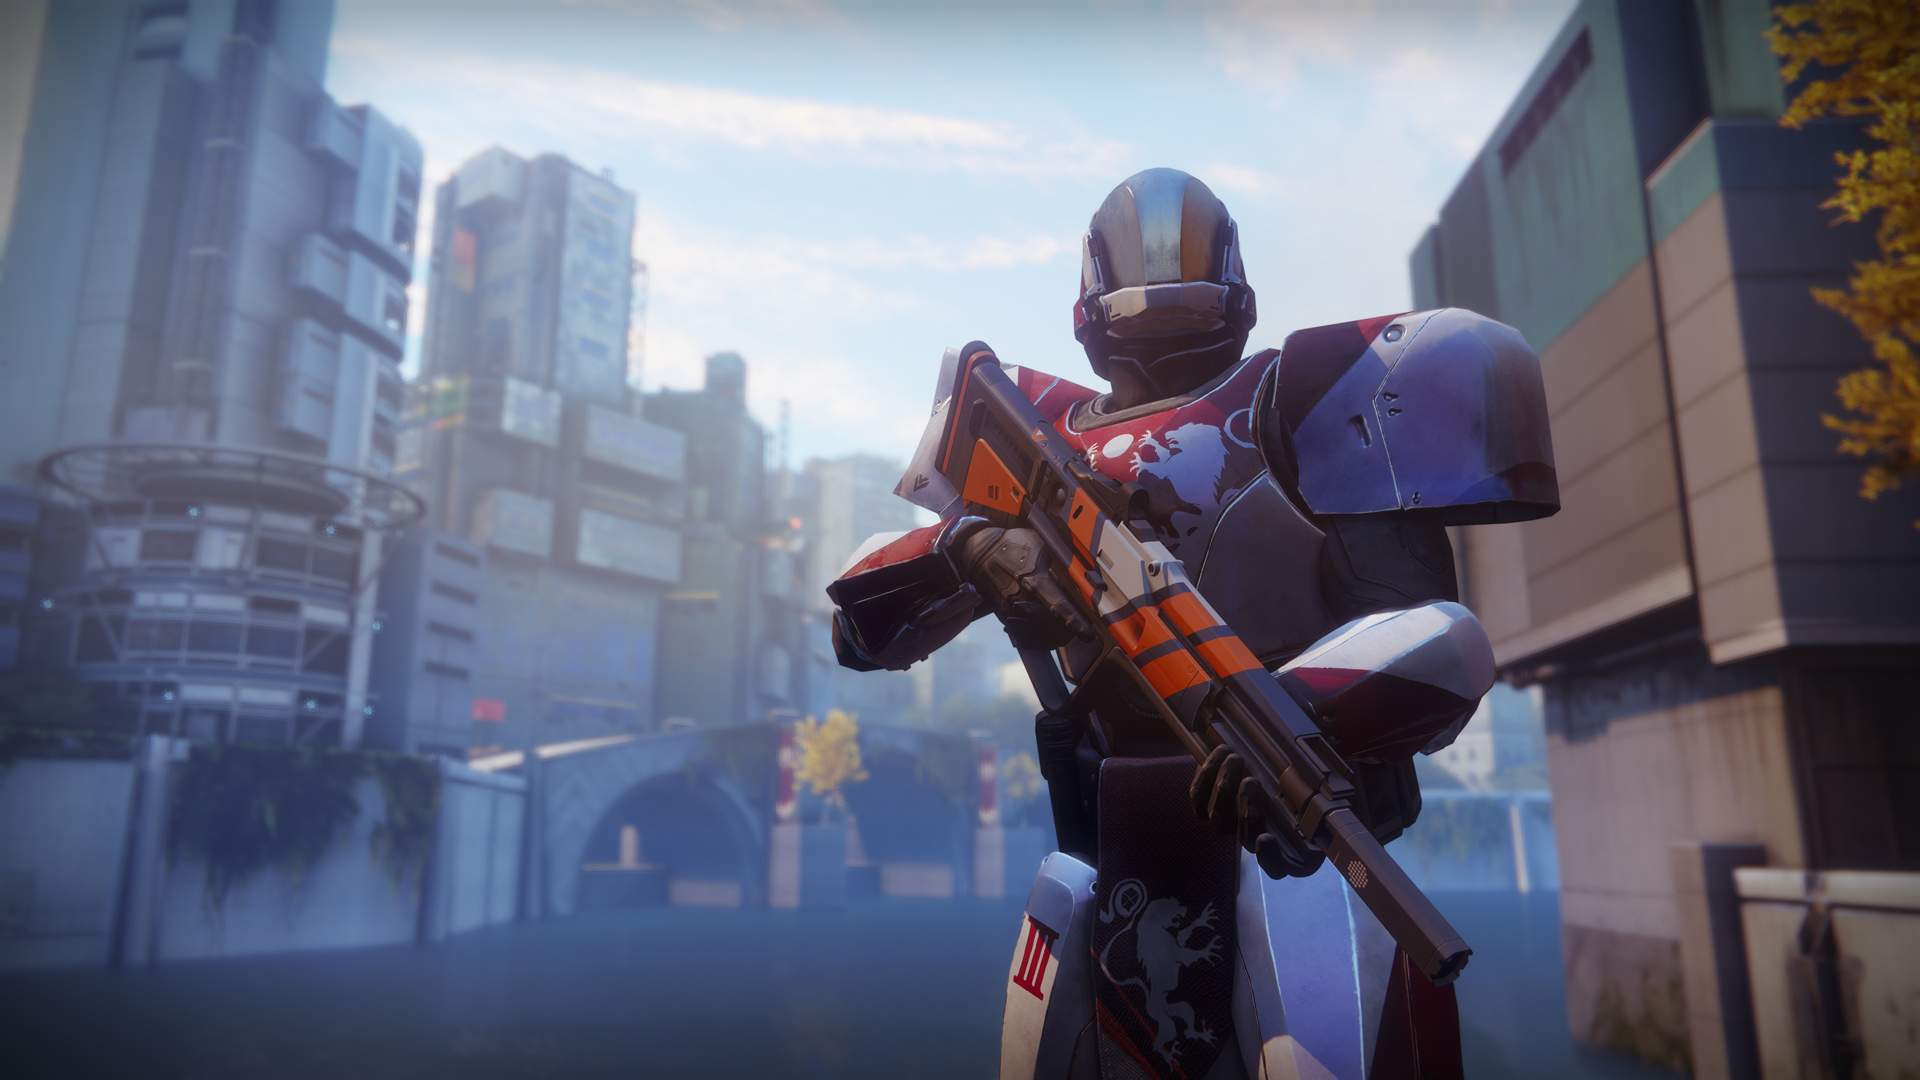 Two-player team beats Emperor Calus in 'Destiny 2'